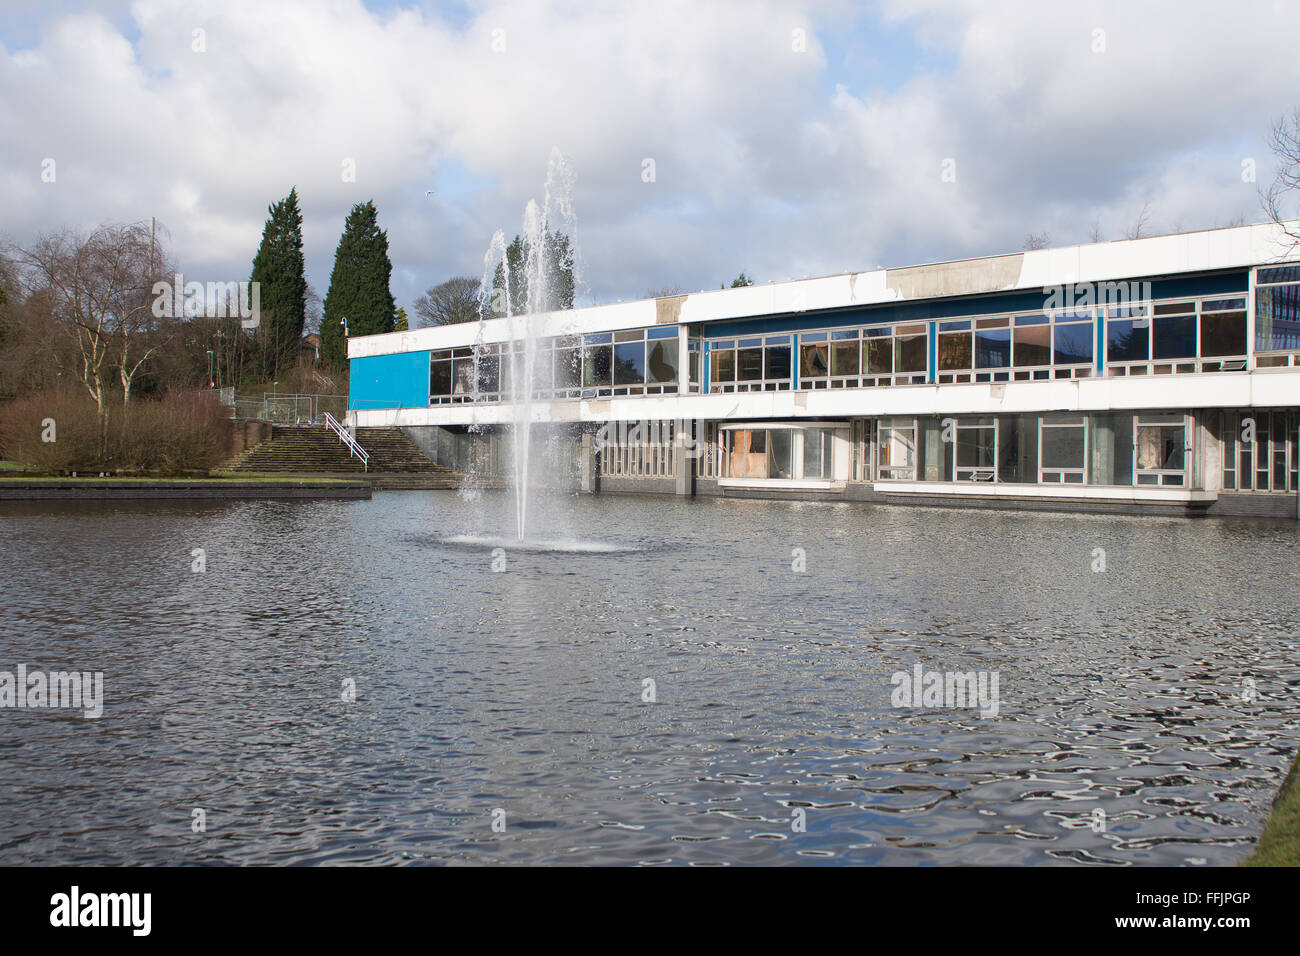 Pilkingtons glass head office in St.Helens Alexandra park - Stock Image